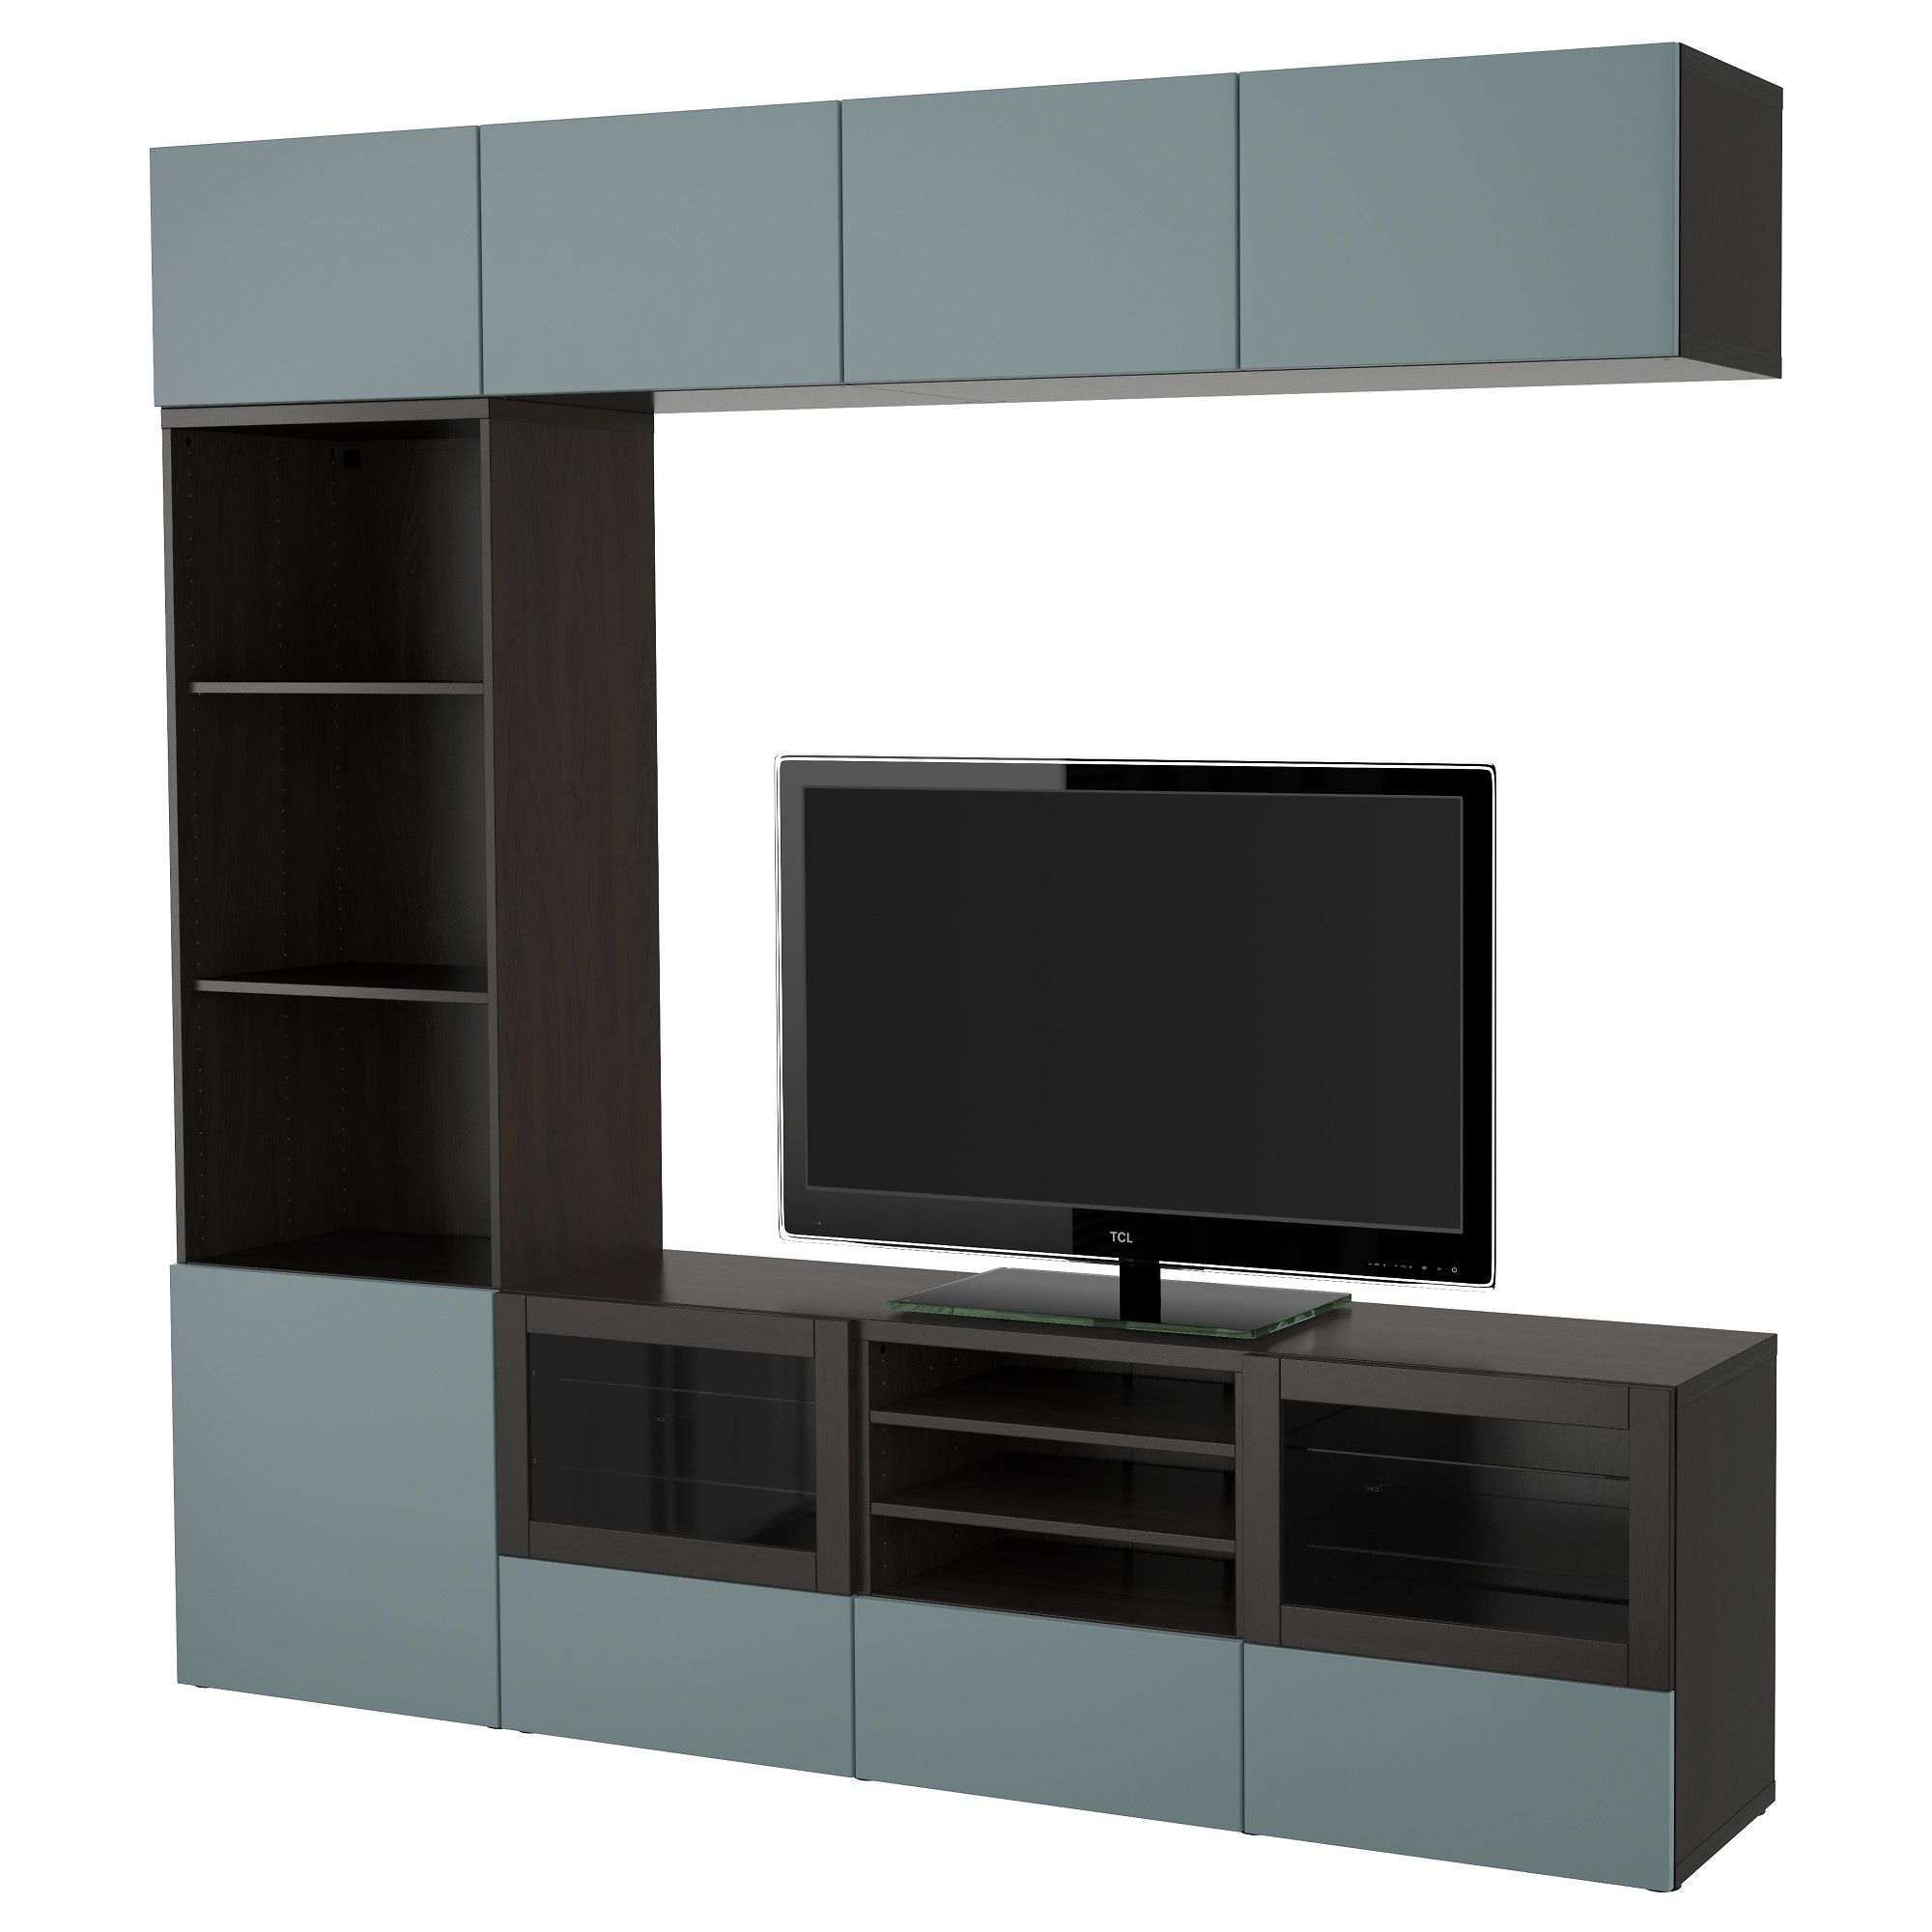 Furniture And Home Furnishings Tv Storage Ikea Lack Tv Stand Wall Unit Designs